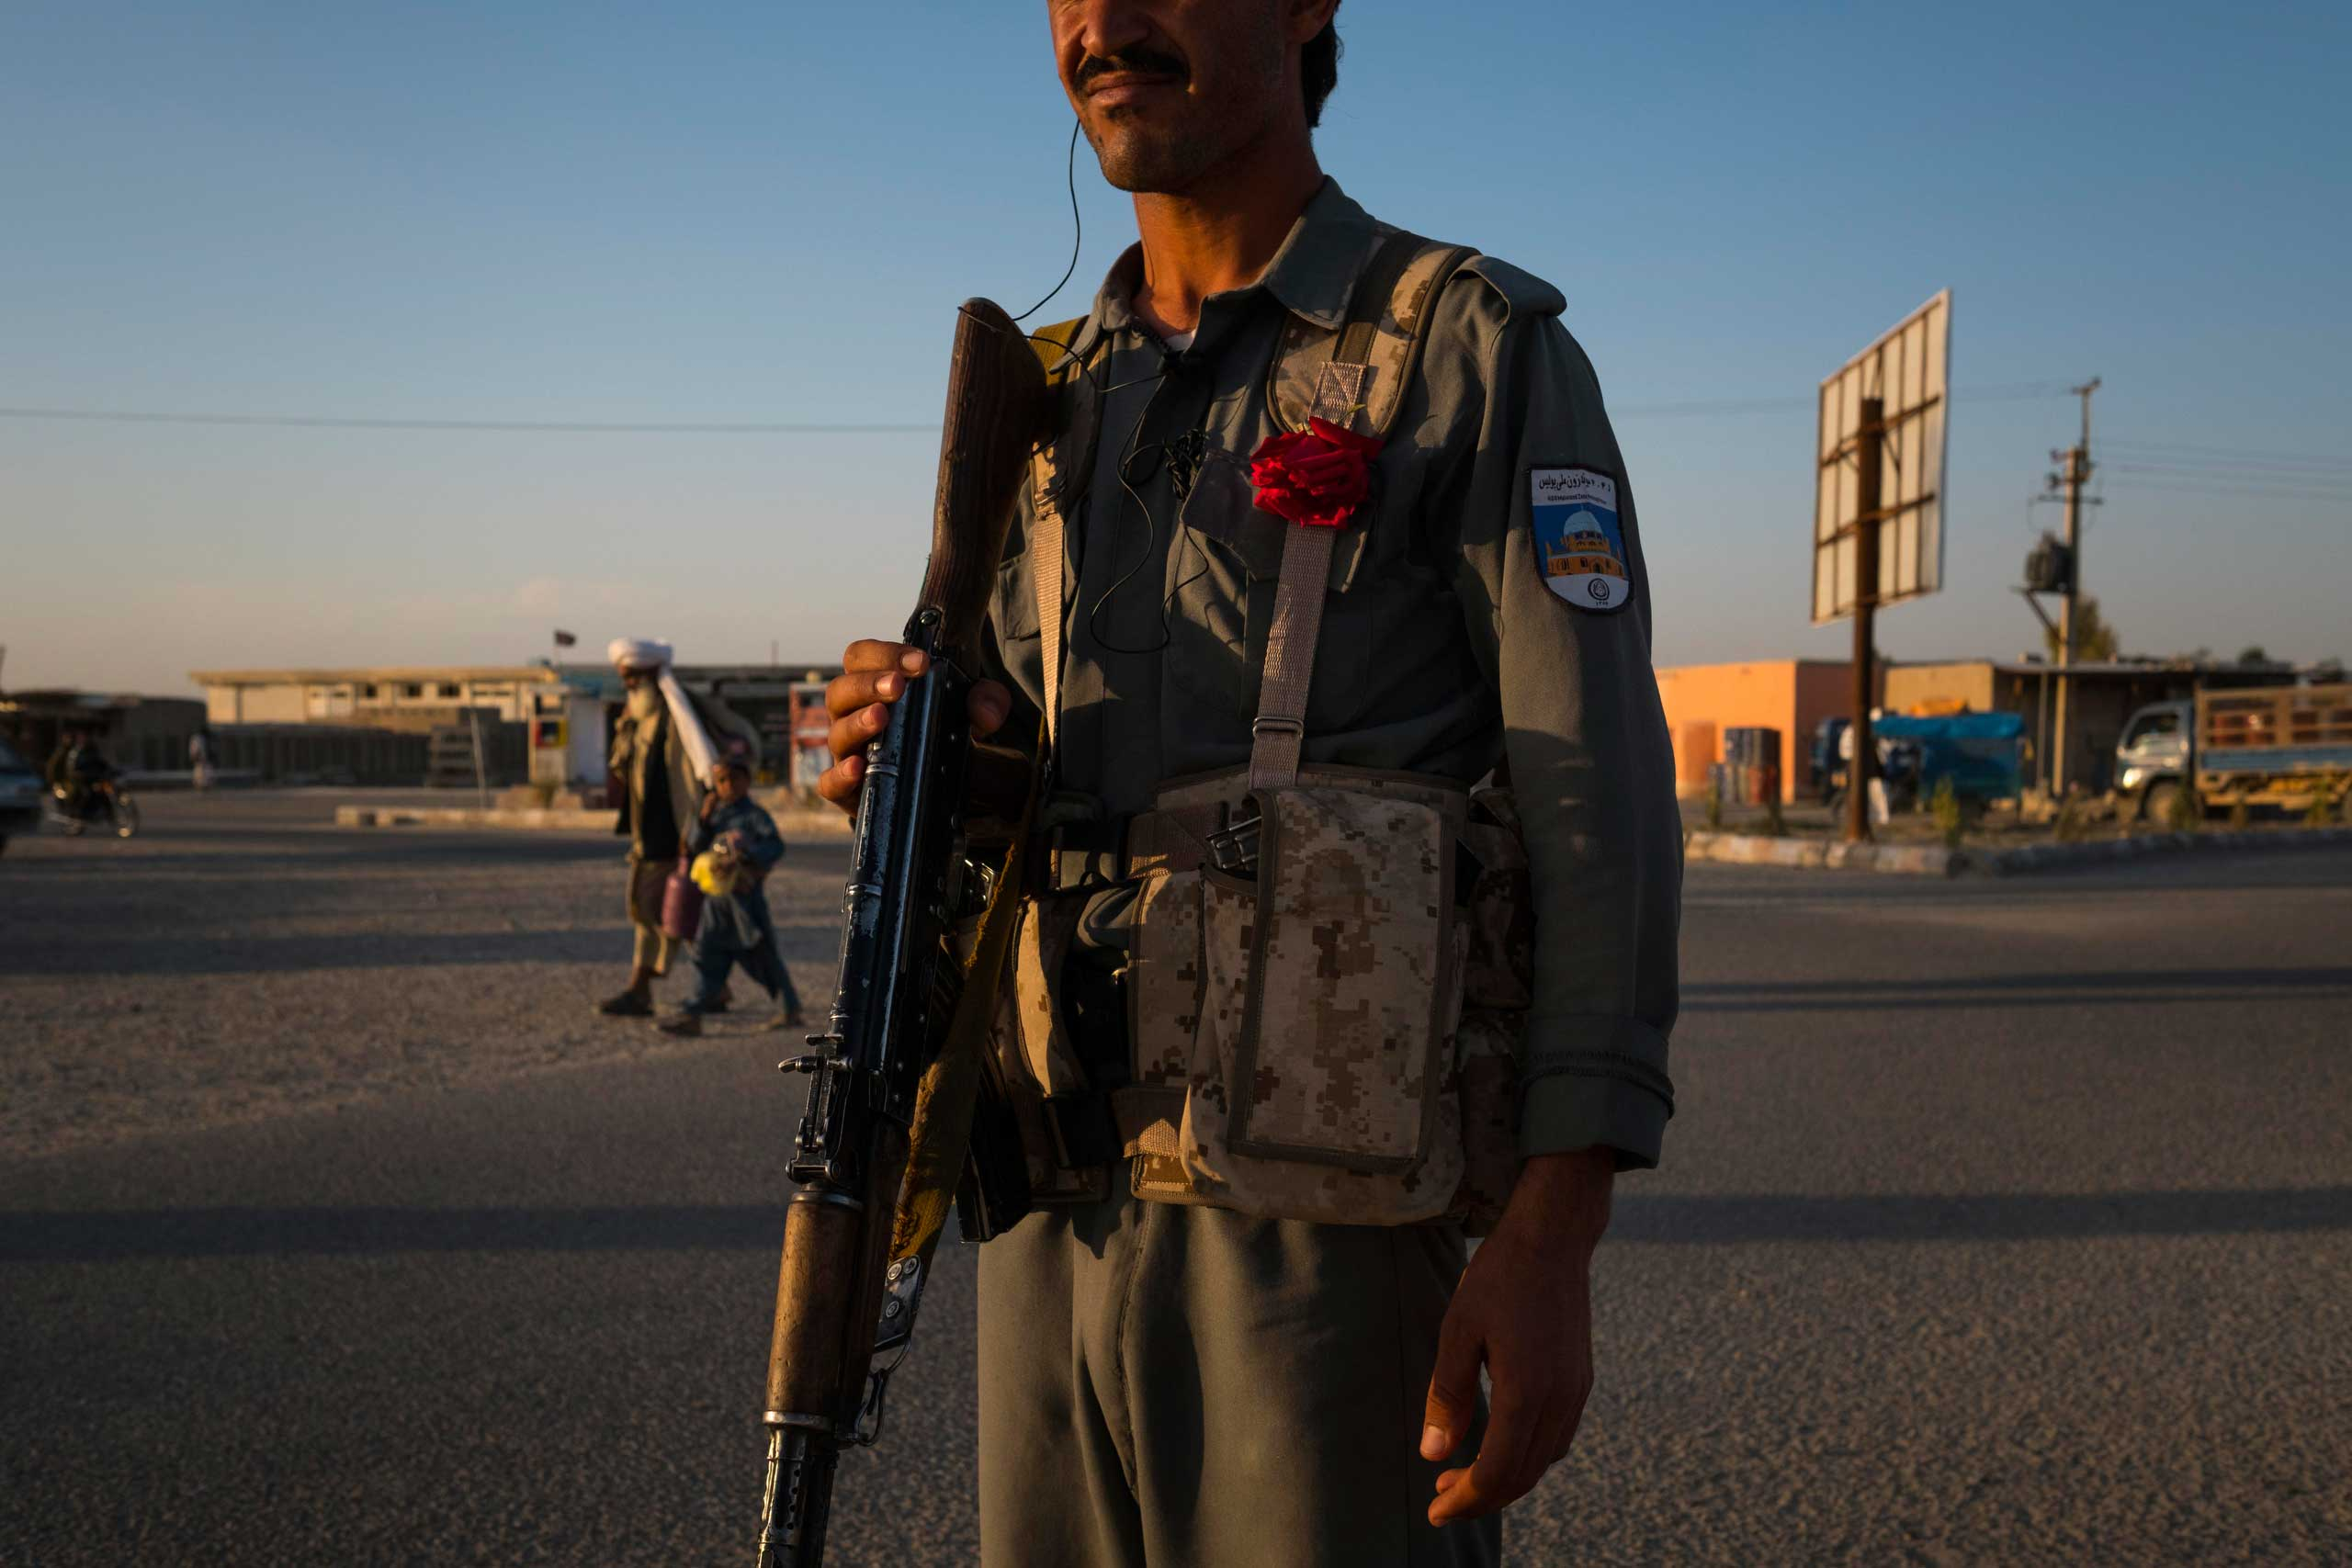 An Afghan National Policeman, wearing a red rose, at a road check point in Lashkar Gah, the capital of Helmand in southern Afghanistan. Lashkar Gah came under serious threat of being overrun in late 2015 with Taliban insurgents mounting attacks from several locations outside the city. The city remains tense with the surrounding districts contested or under the control of the Taliban and with a bloody fighting season expected still to come.